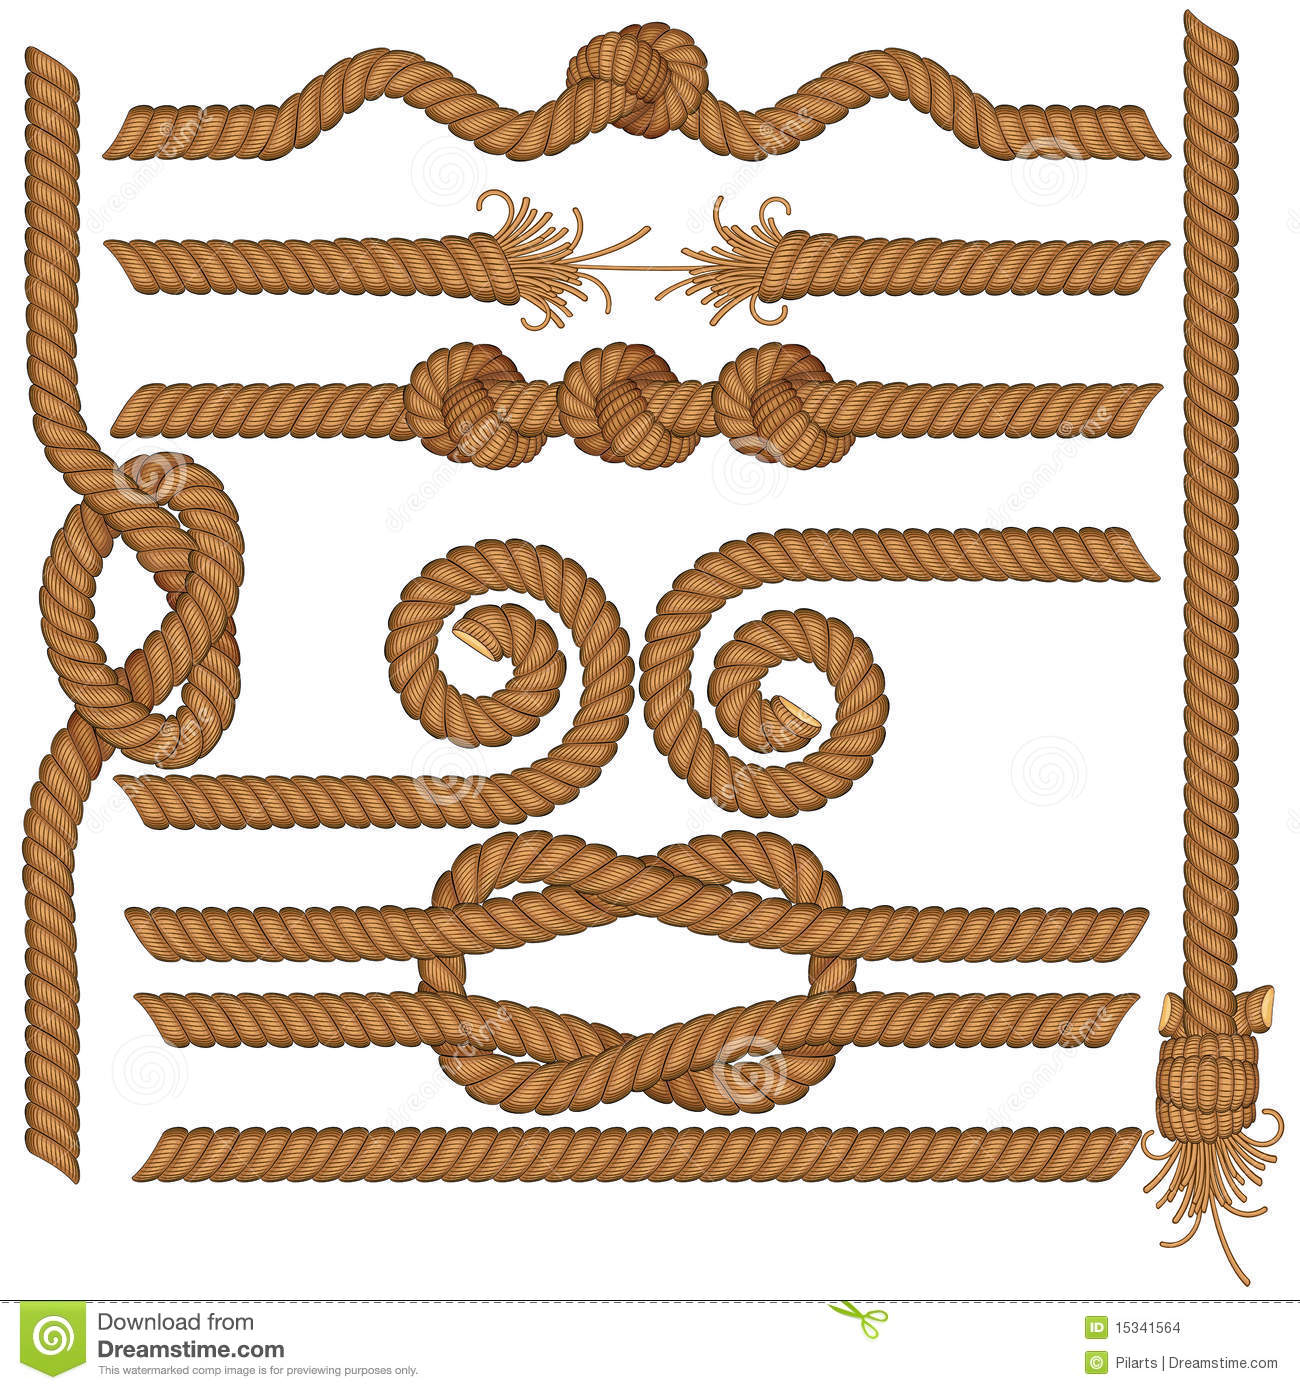 Rope clipart #15, Download drawings